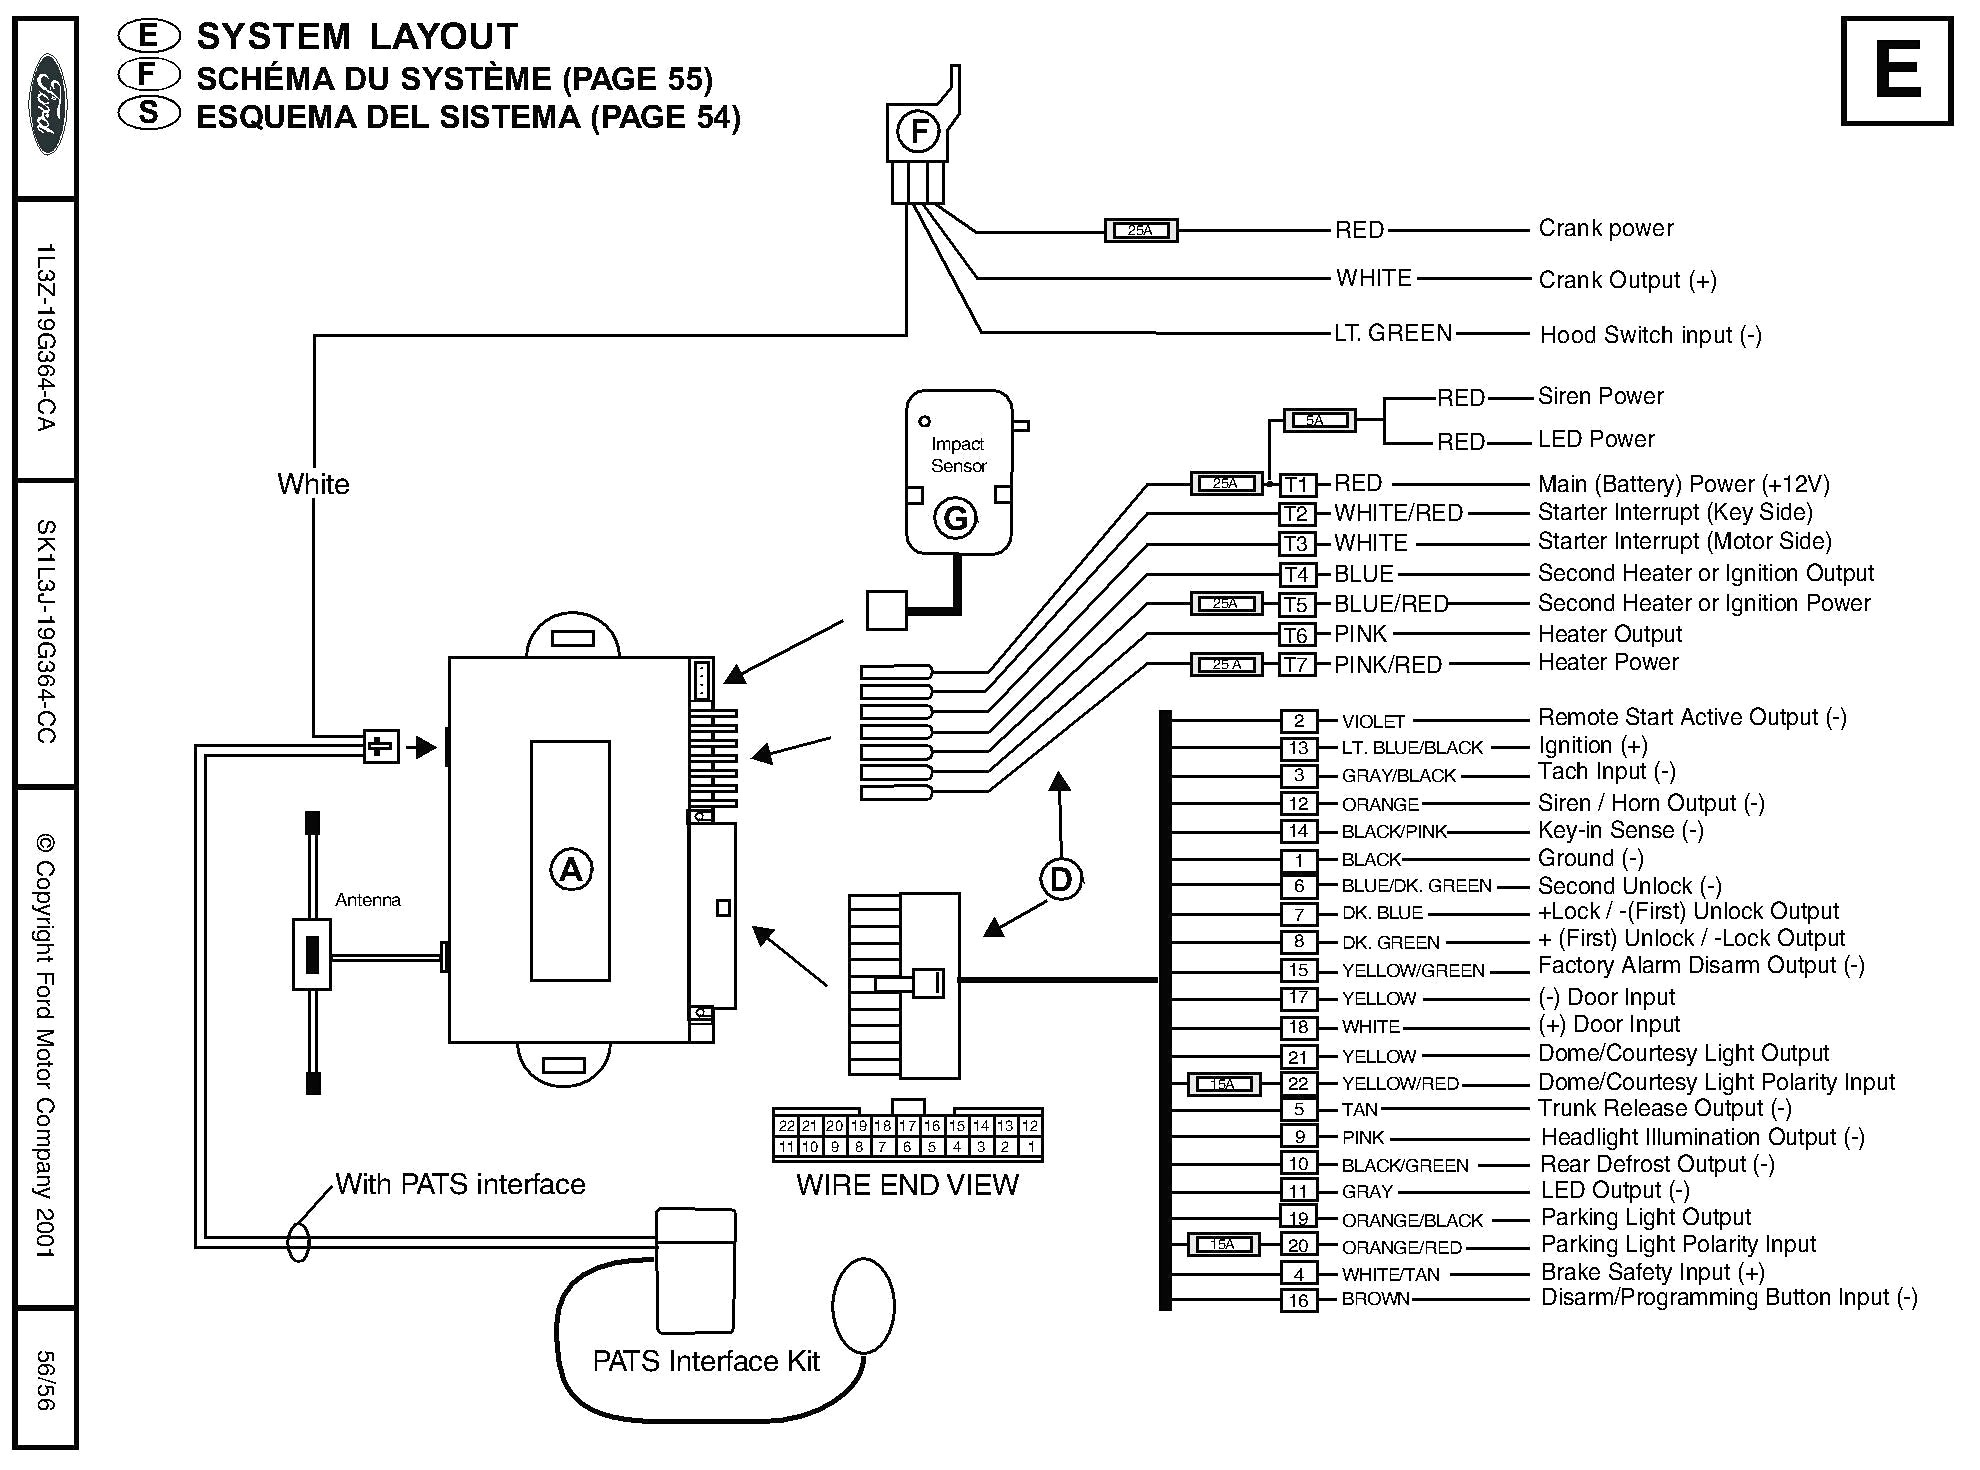 viper car alarm wiring diagram bulldog security wiring diagrams and rh detoxicrecenze com Viper Security System Wiring Diagram Viper 350 HV Wiring-Diagram